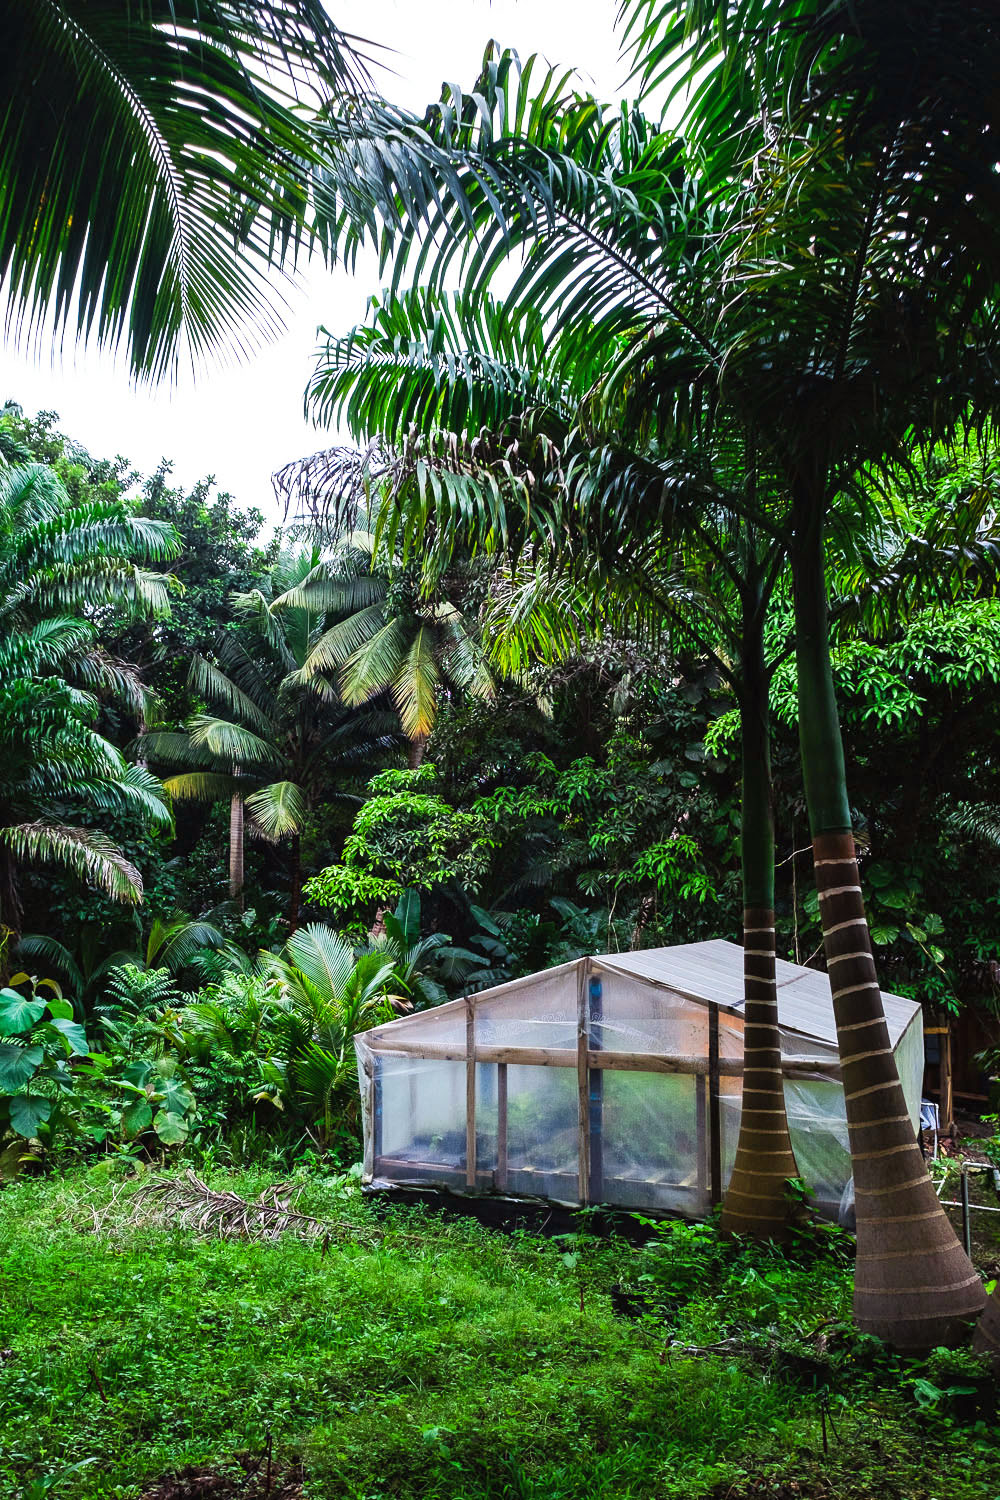 Coco Hill Forest | A 5-Day Itinerary of What to See and Eat around Barbados